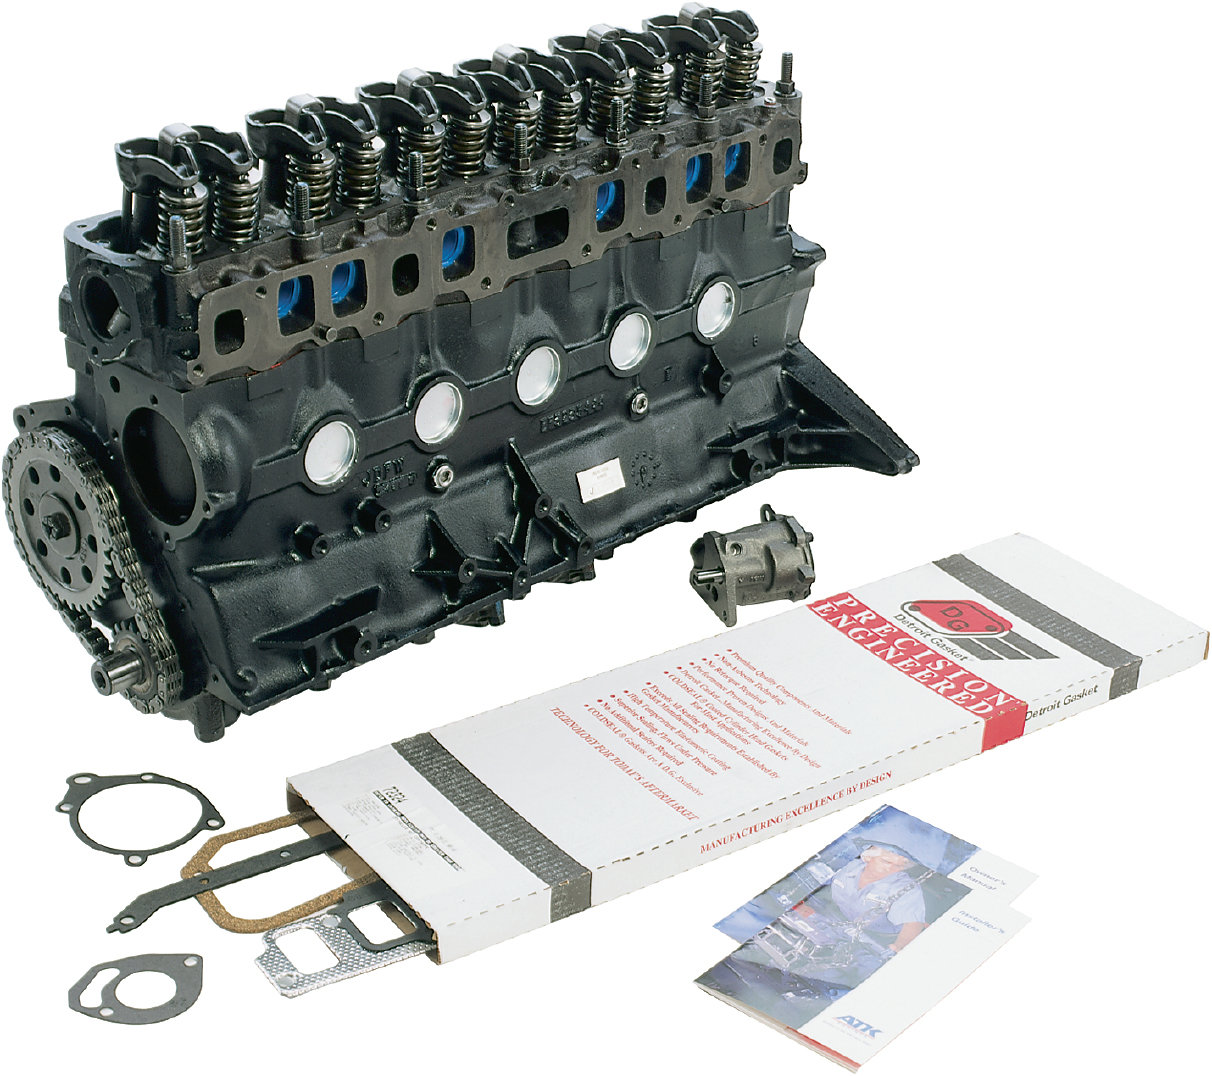 hight resolution of  engine for 96 98 jeep wrangler tj cherokee xj grand cherokee zj the quadratec difference